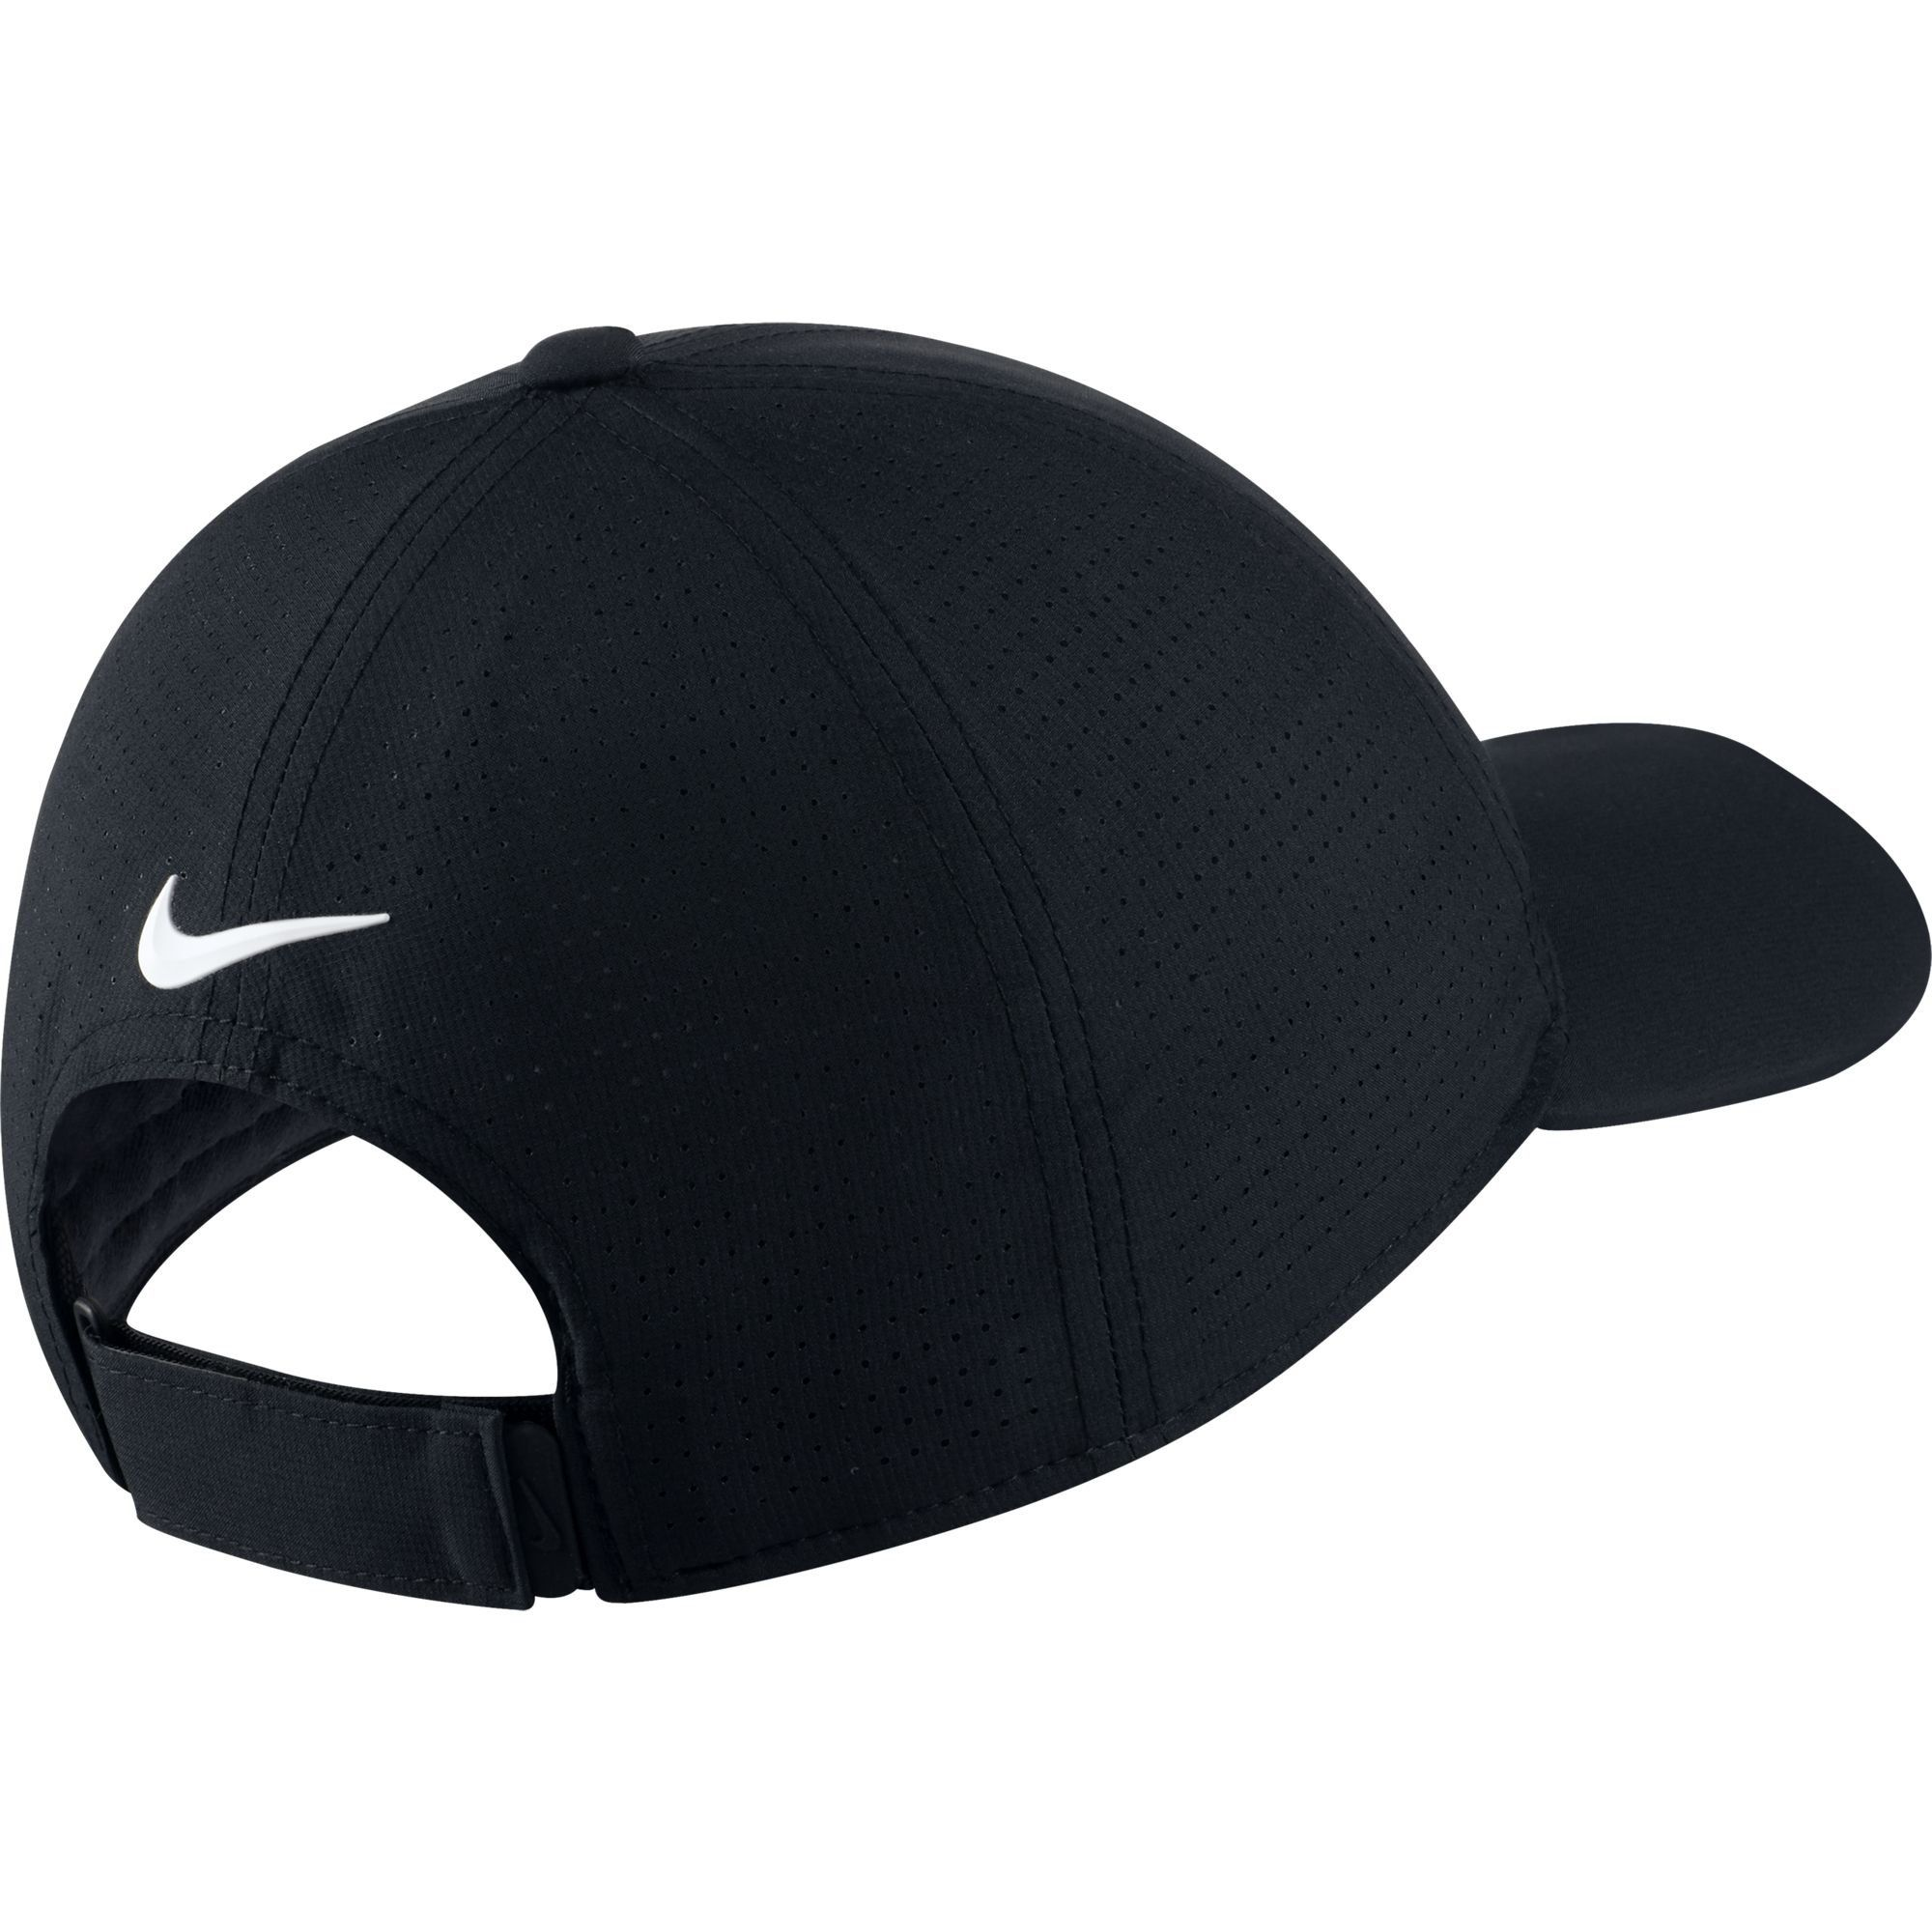 7d185bd7 Women Golf Clothing - NIKE Womens AeroBill Legacy 91 Perforated Cap Black/ Anthracite/White One Size